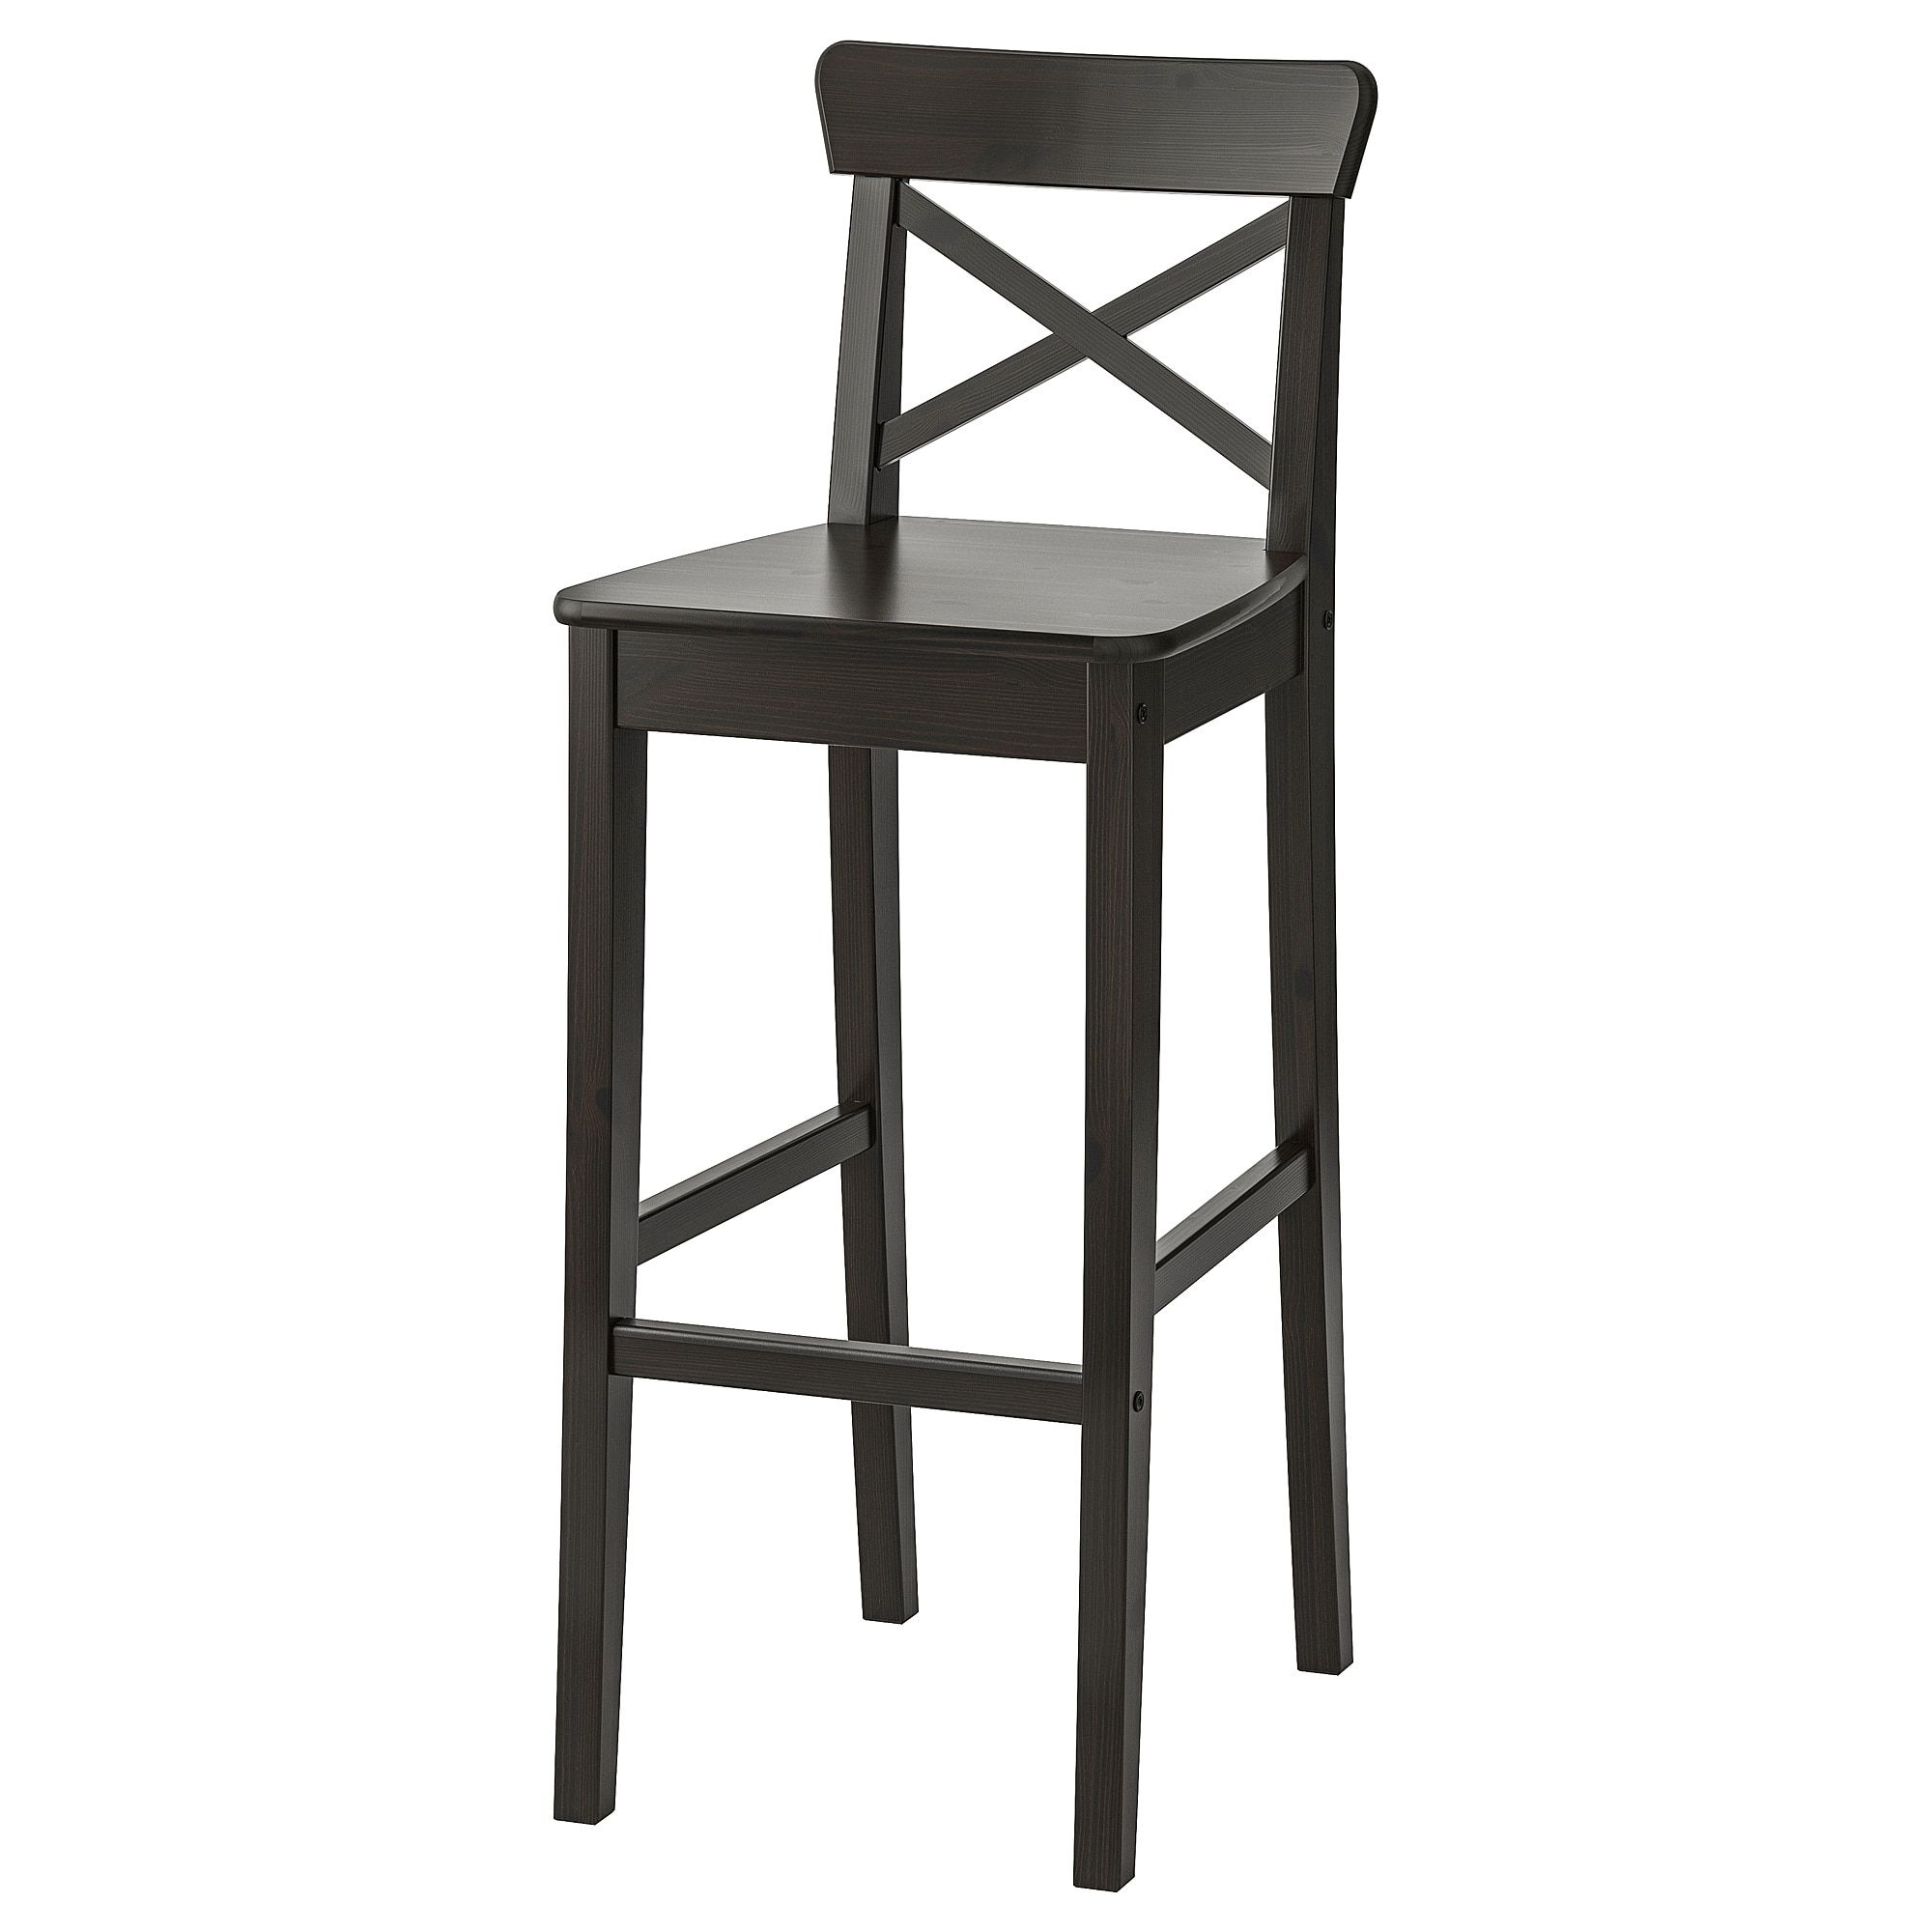 Ikea Ingolf Brown Black Bar Stool With Backrest Products In 2019